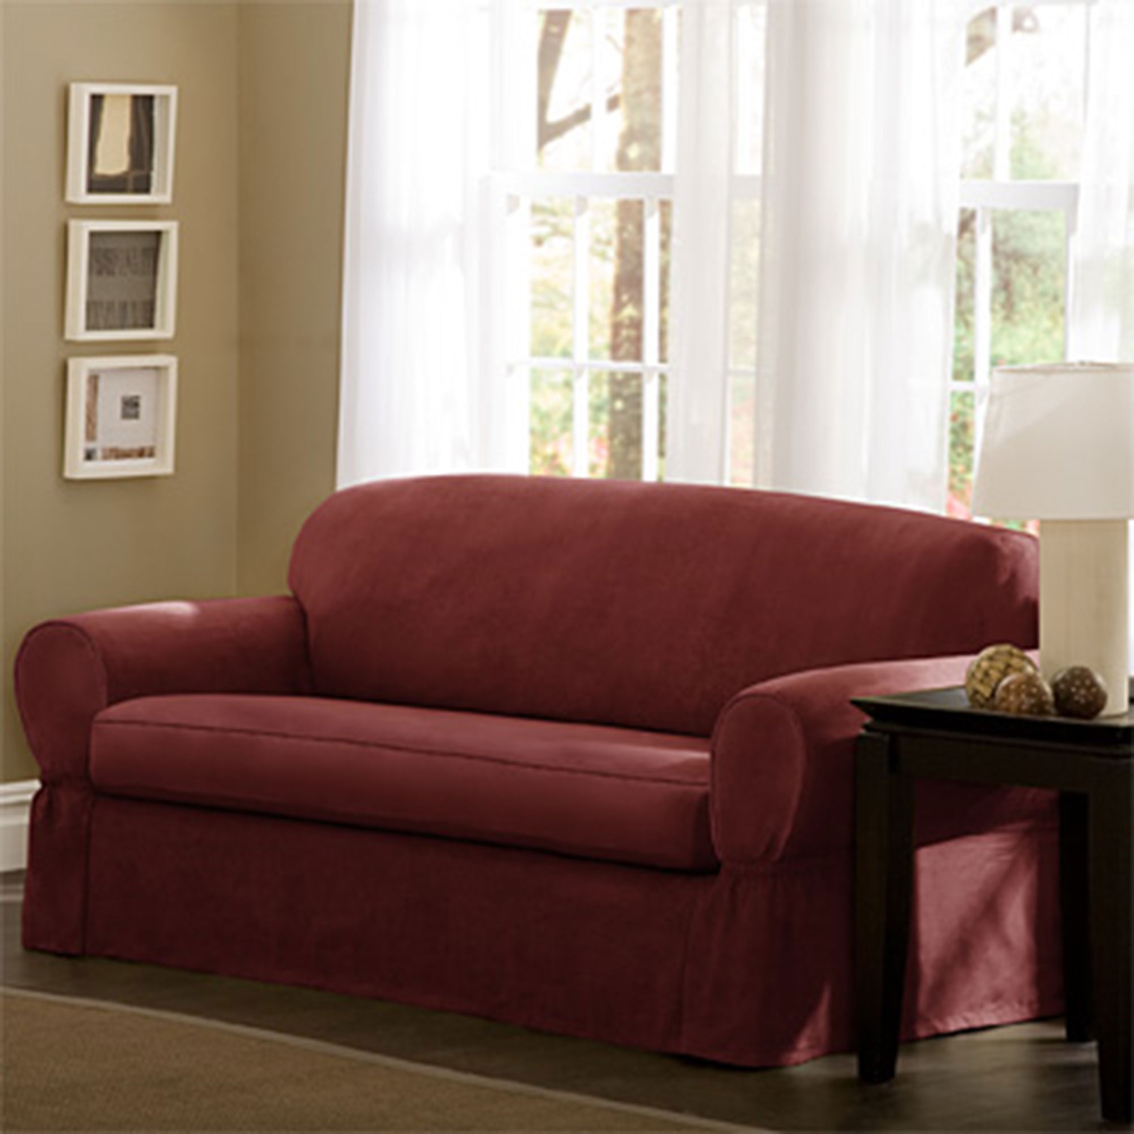 faux suede sofa cover fix bed maytex piped 2 pc slipcover slipcovers